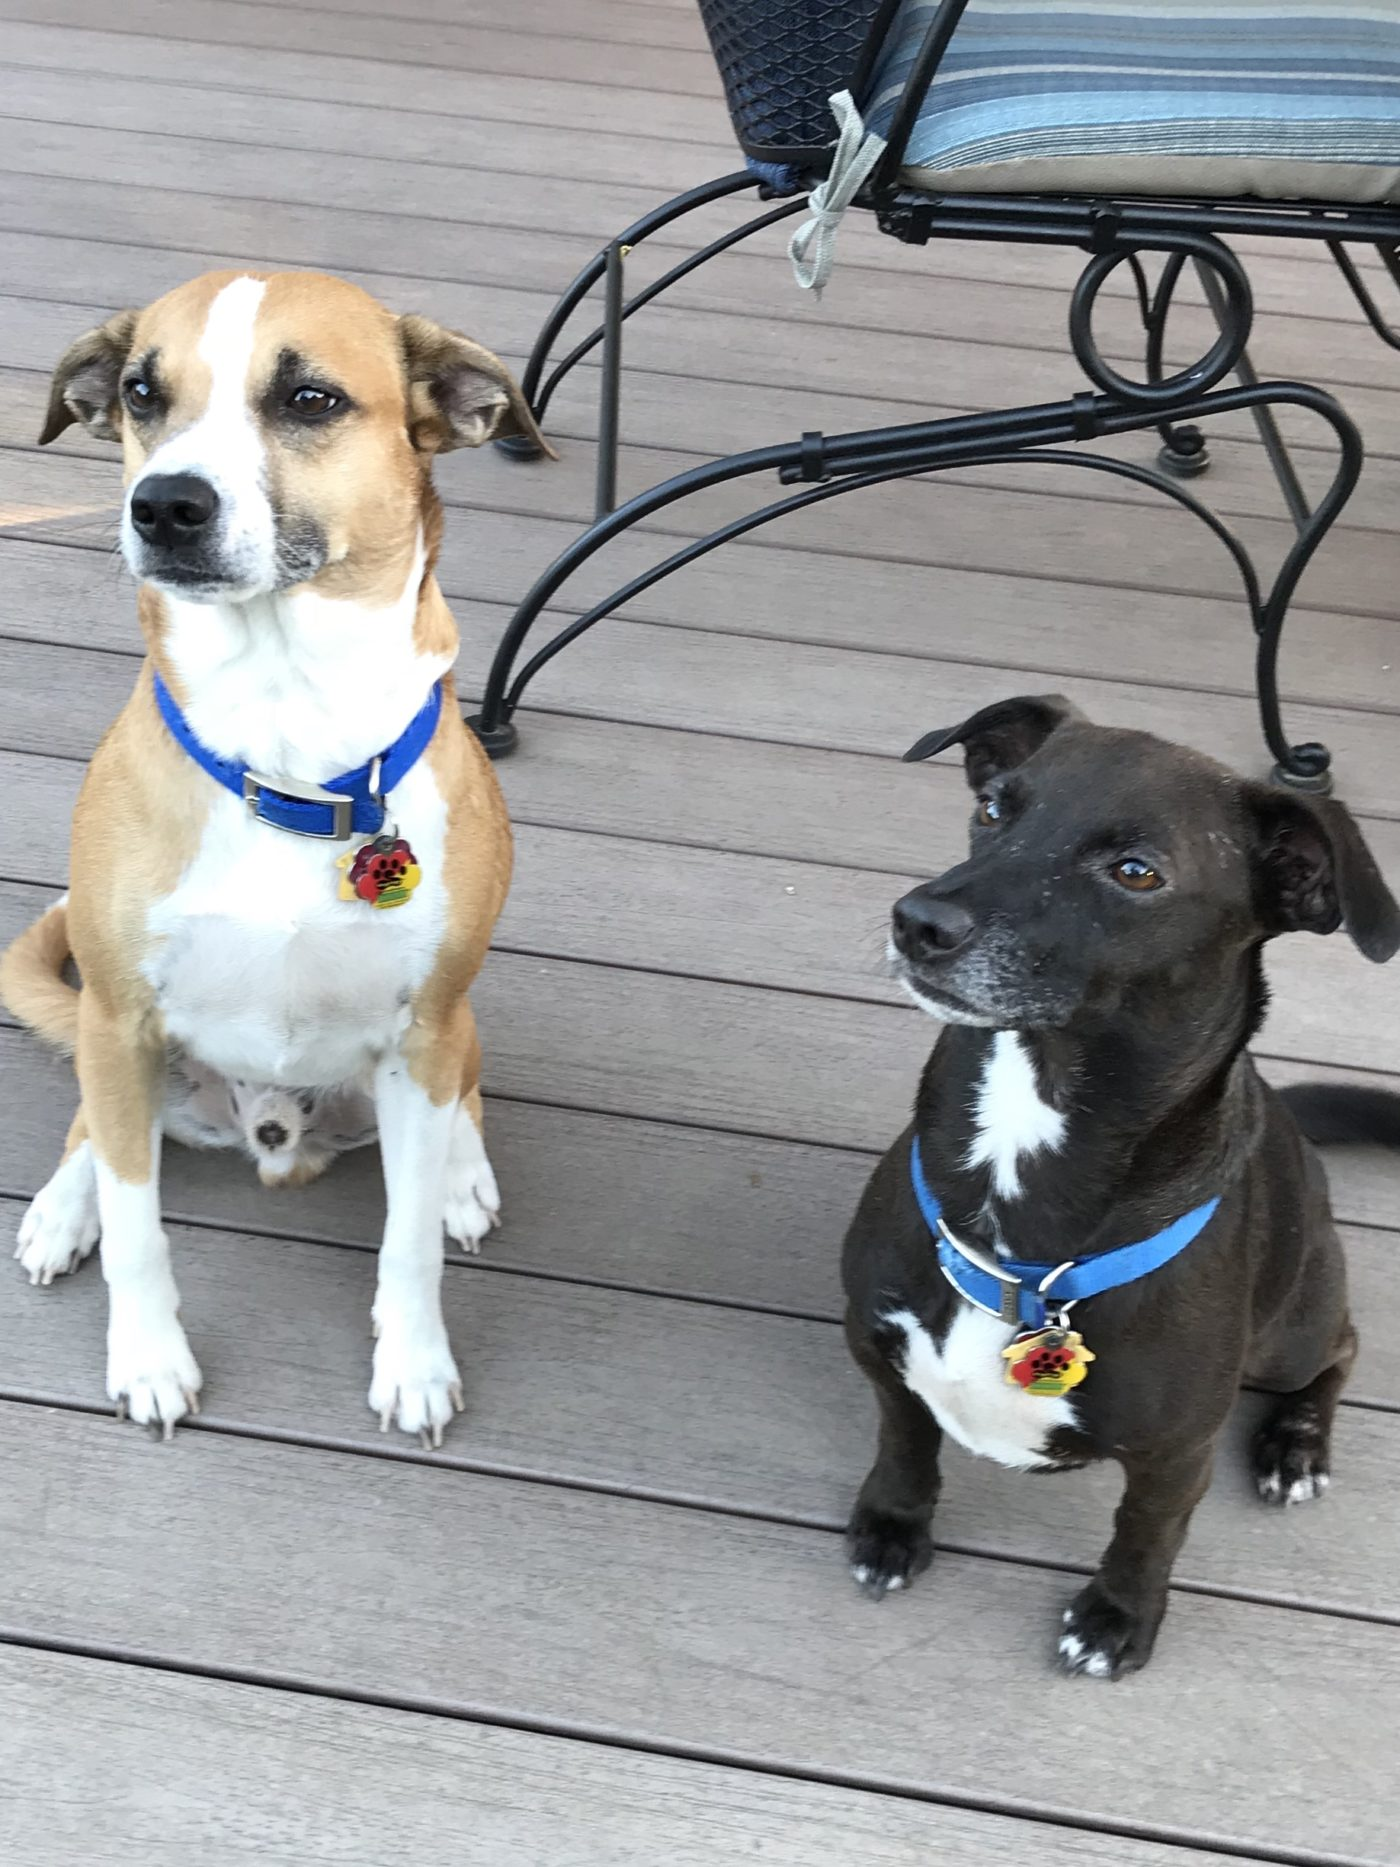 #Waggtaggs #rescuedogs